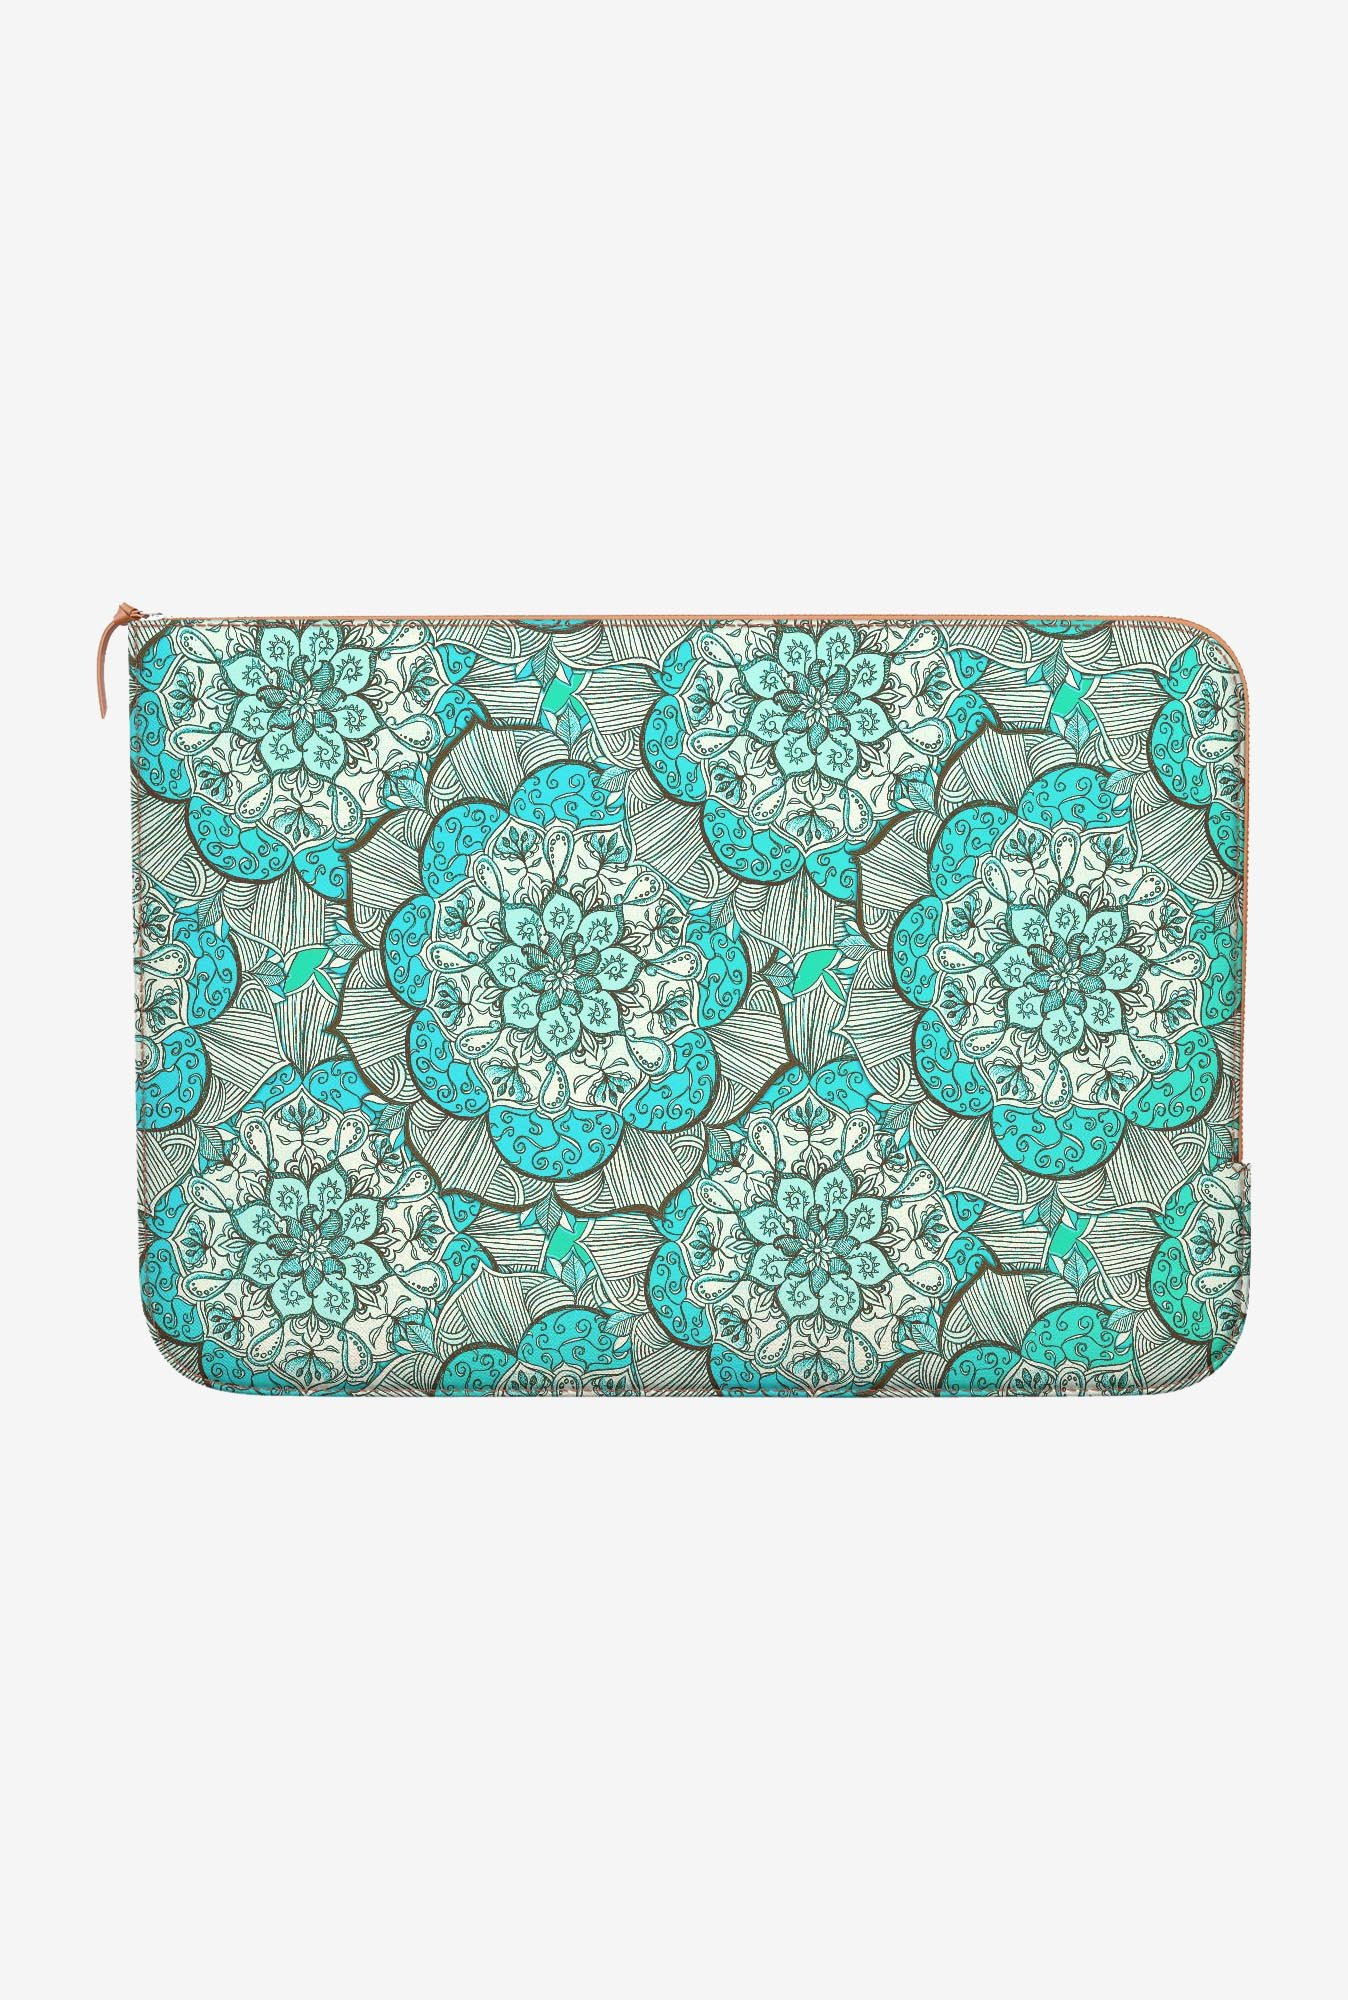 DailyObjects Fresh Doodle MacBook 12 Zippered Sleeve